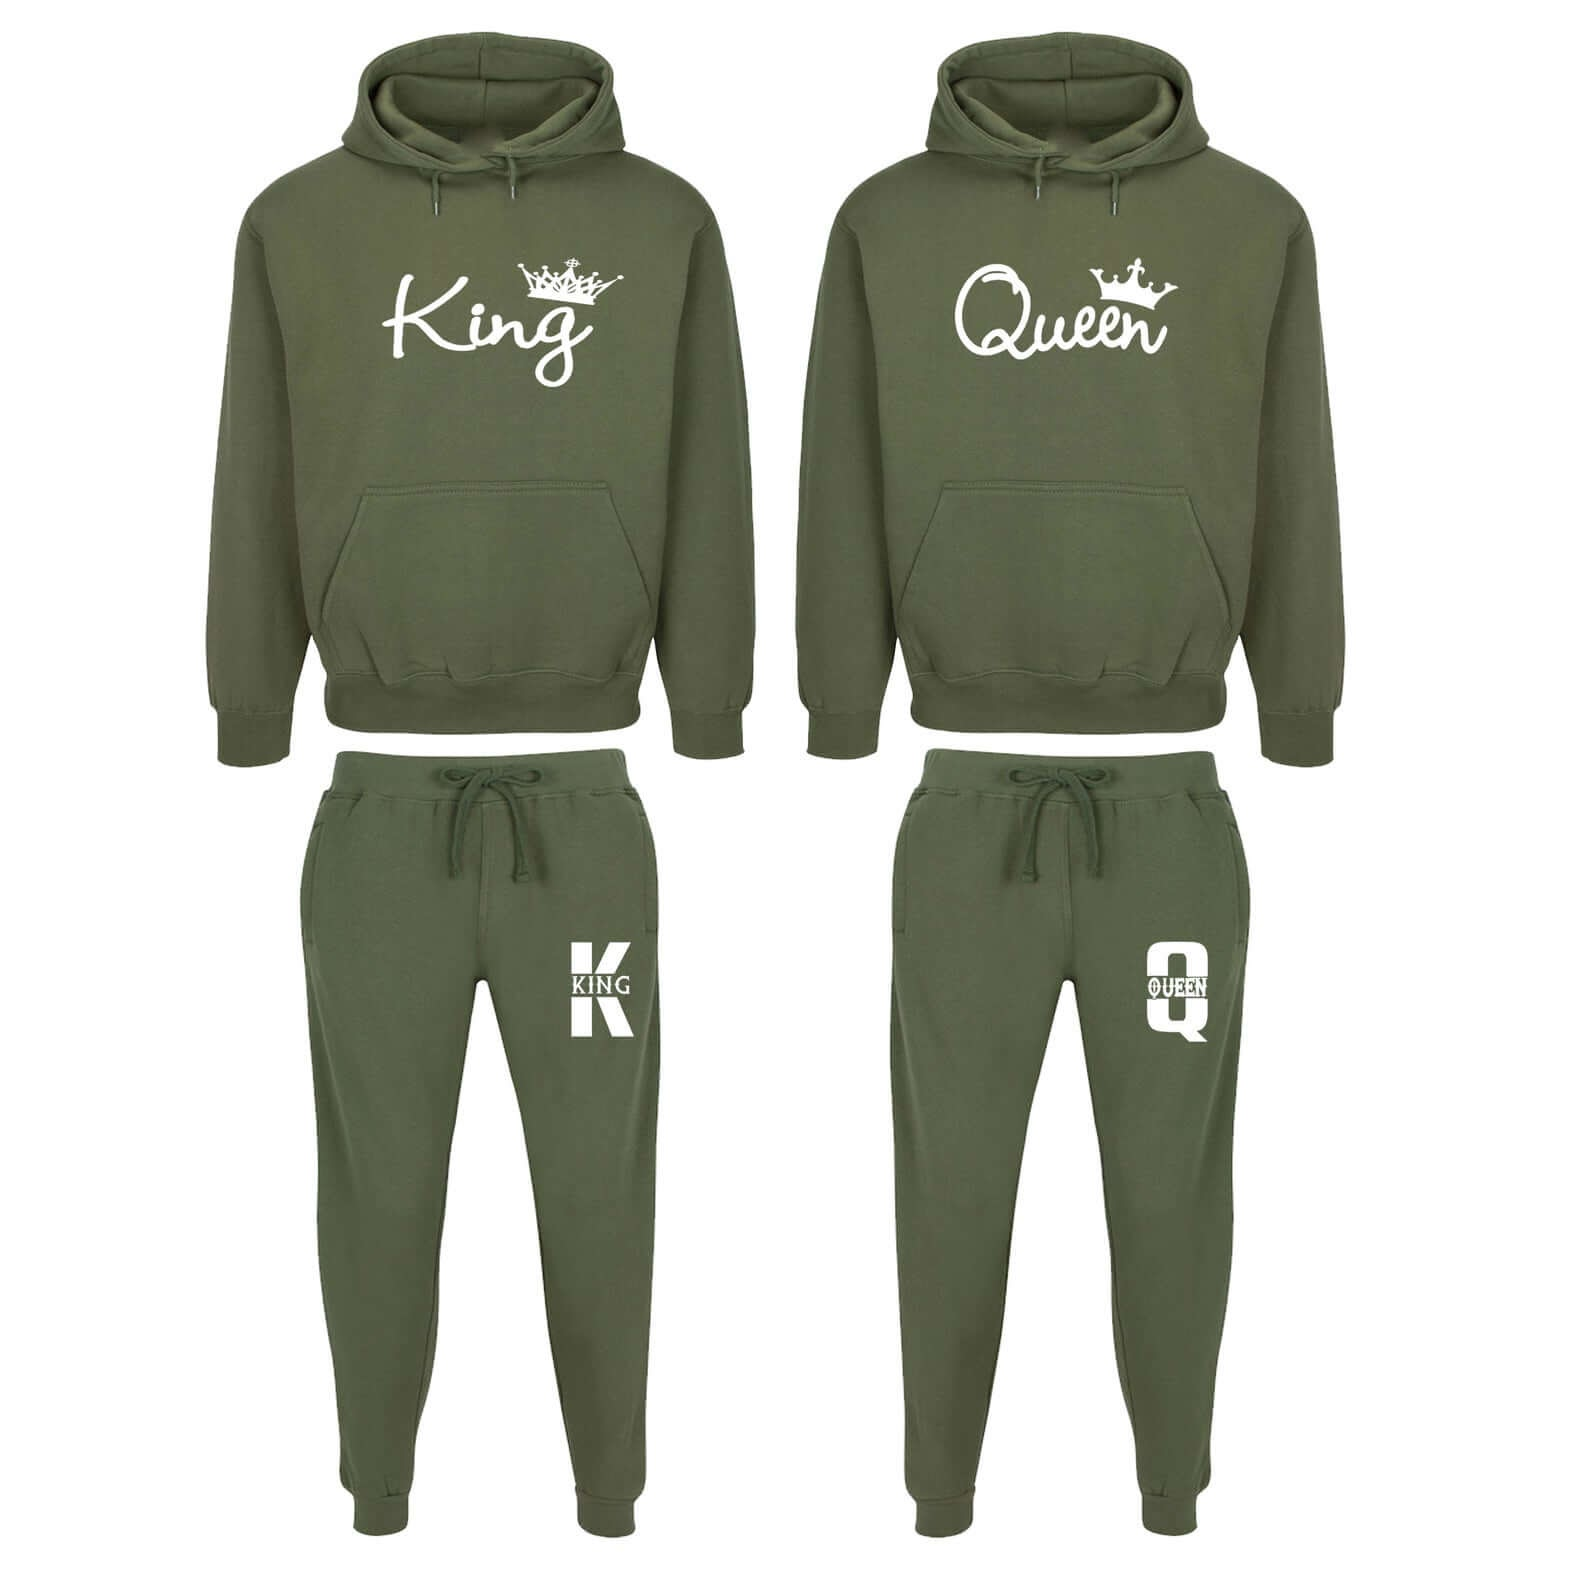 King and Queen Matching Sweatshirts